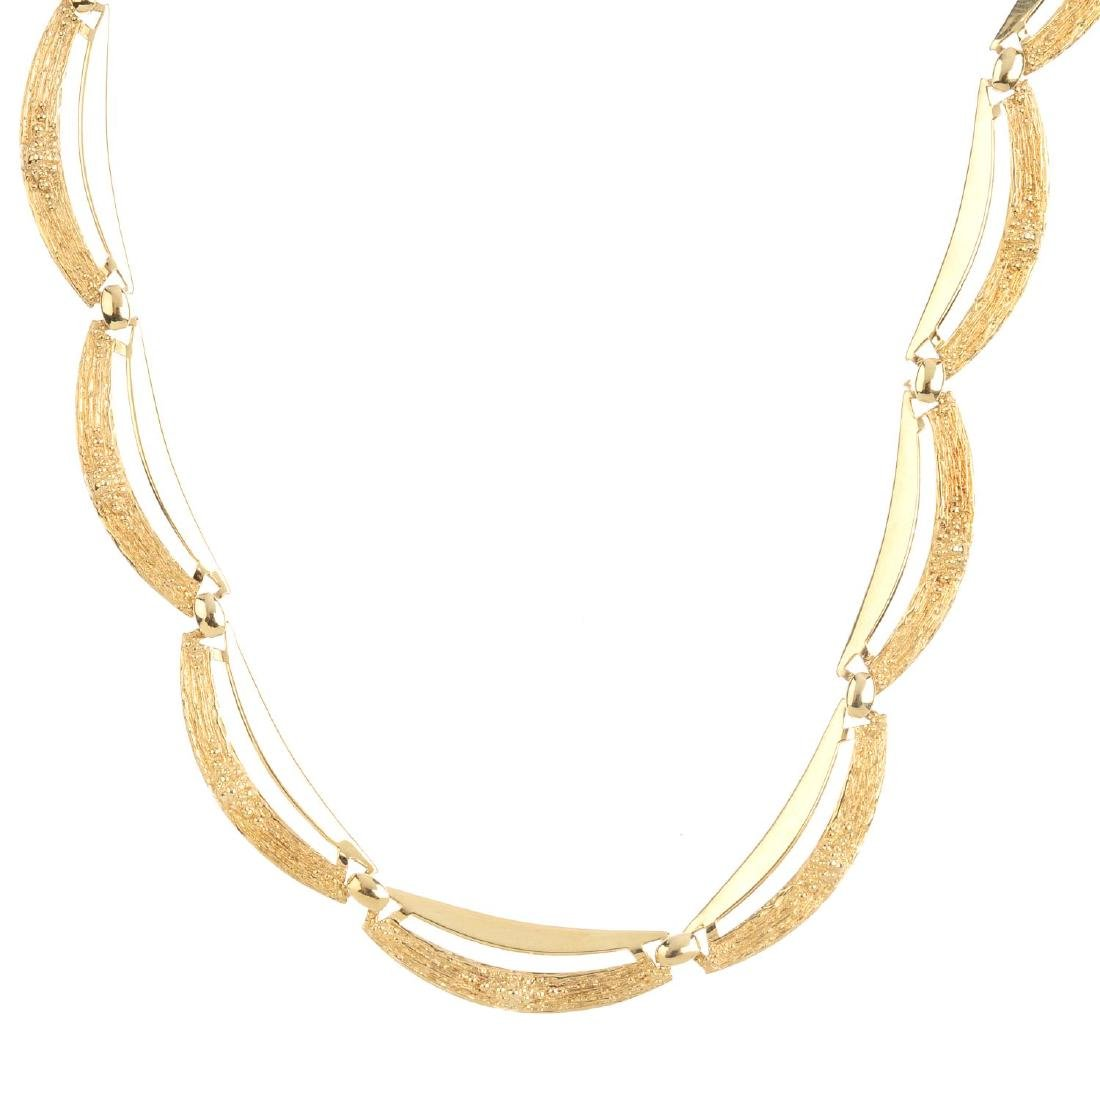 A 1970s 9ct gold necklace. Comprising a series of